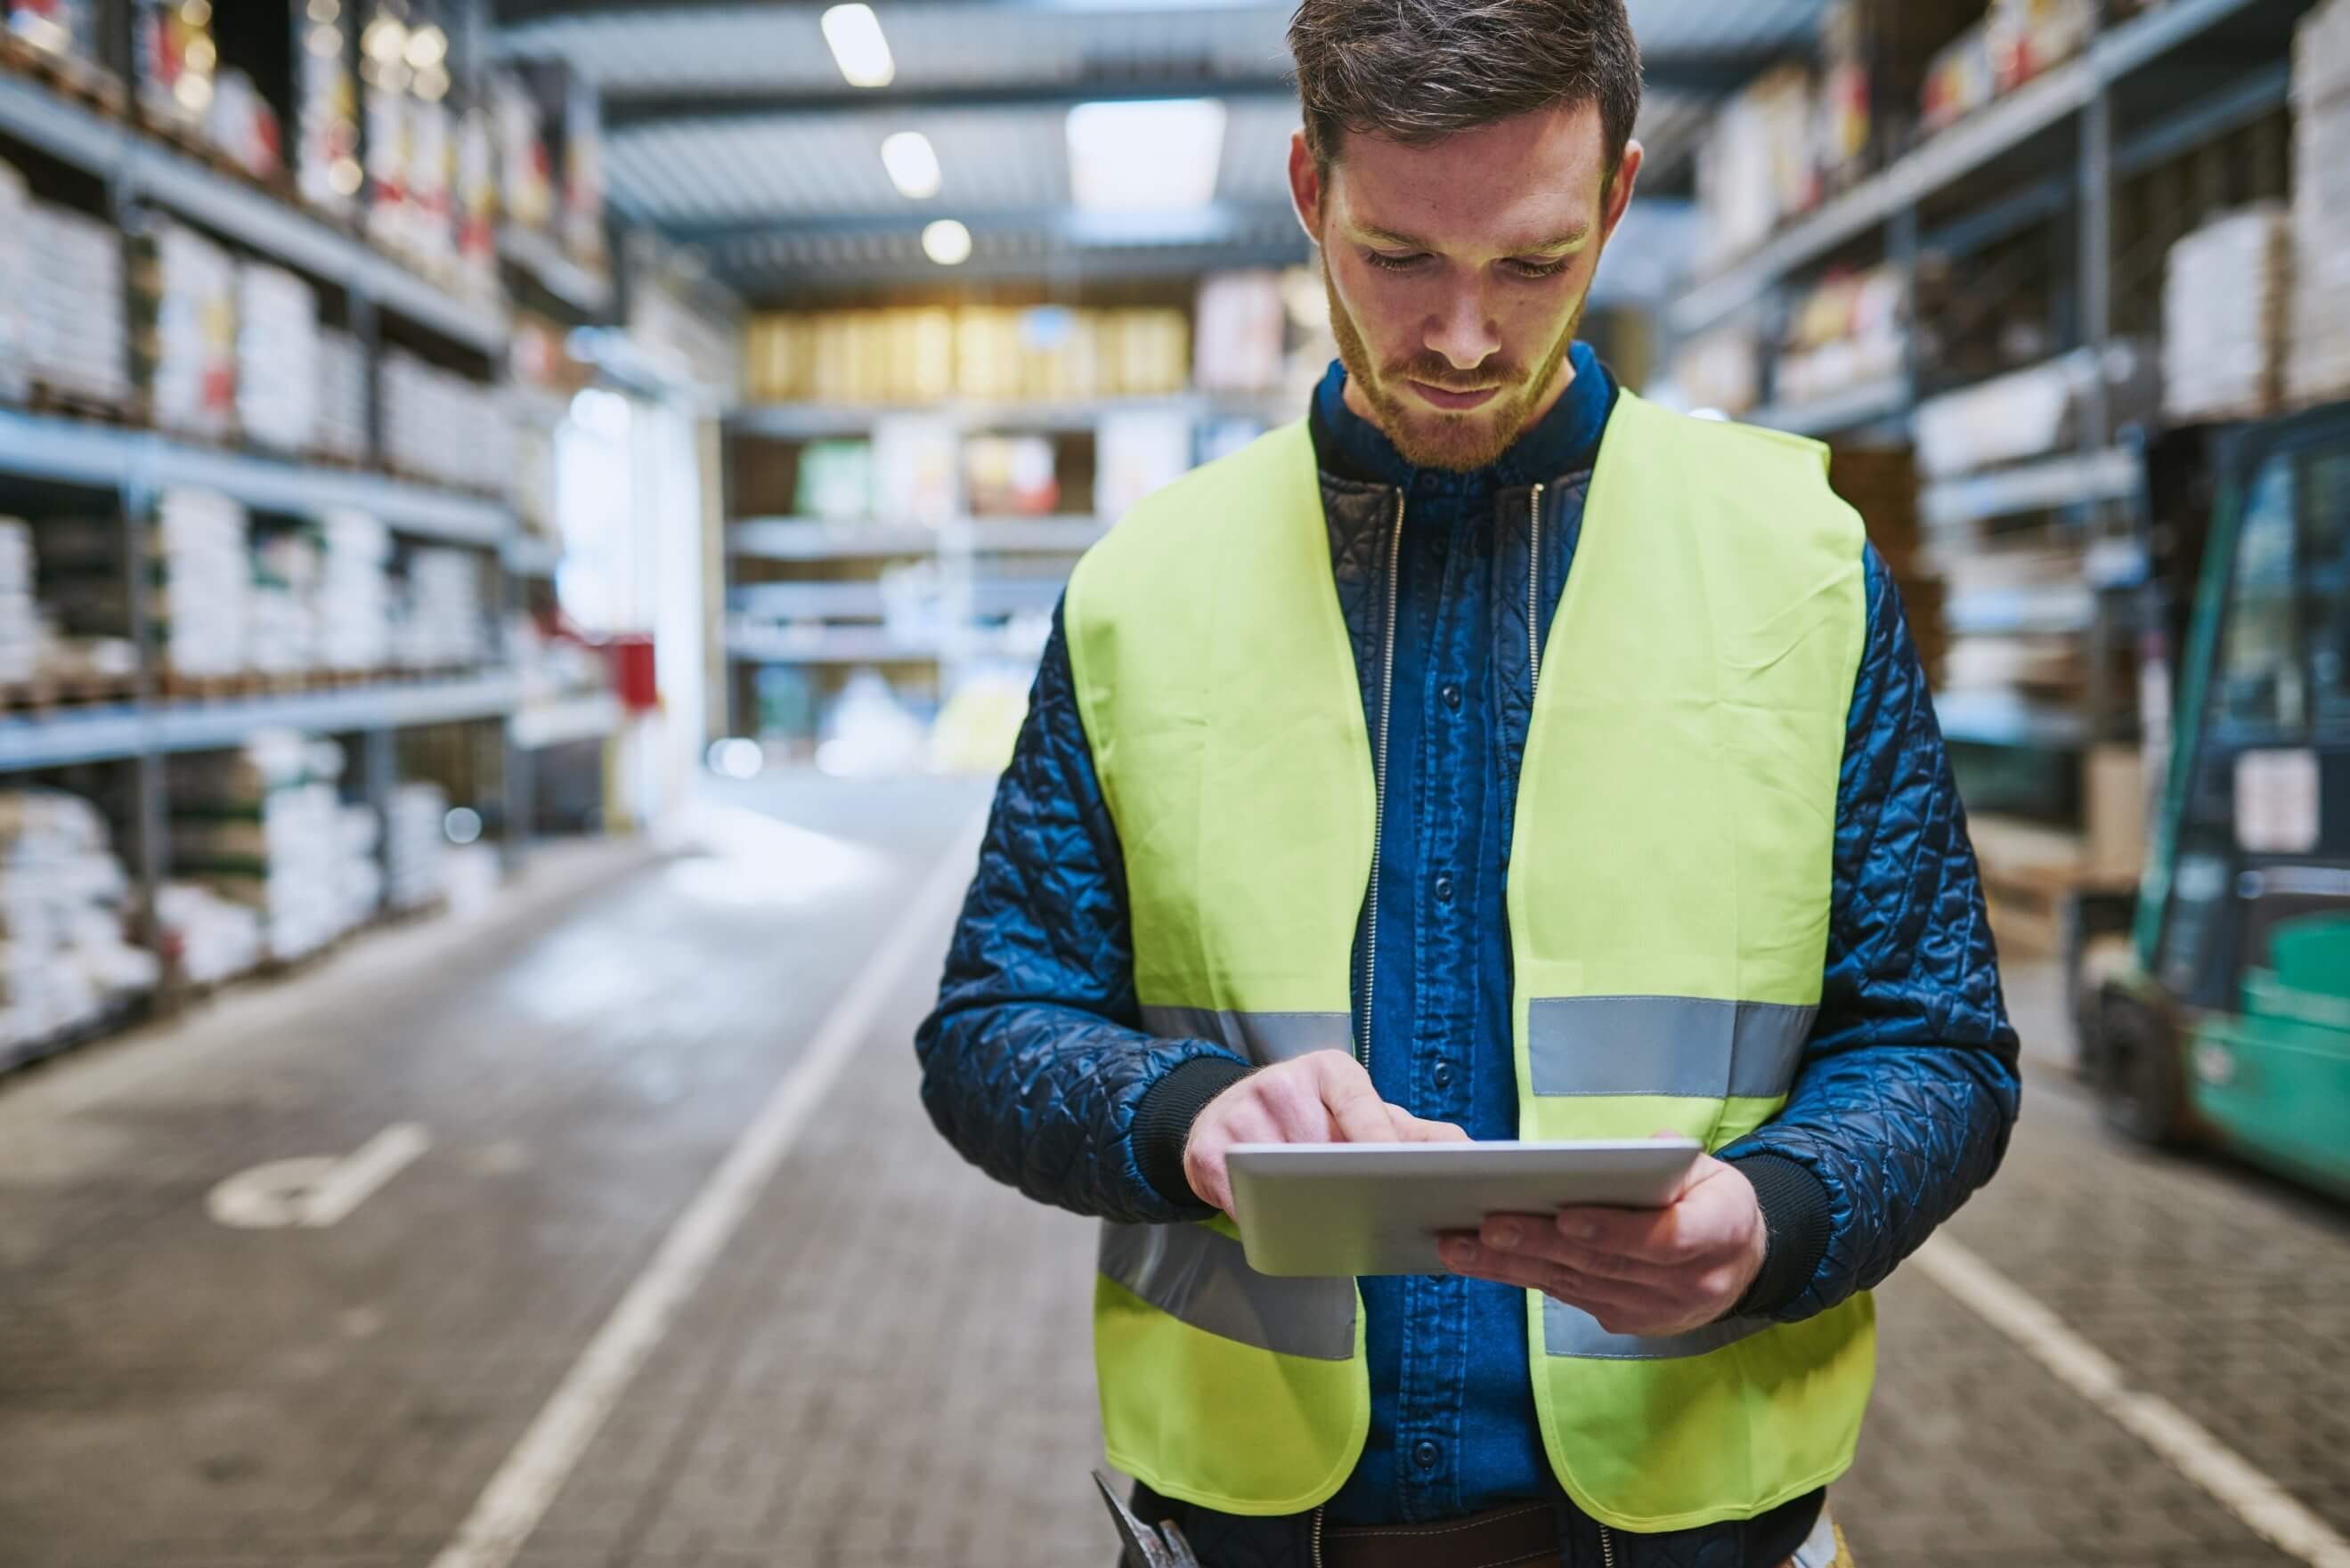 How is Technology Changing Warehouse Property Requirements?